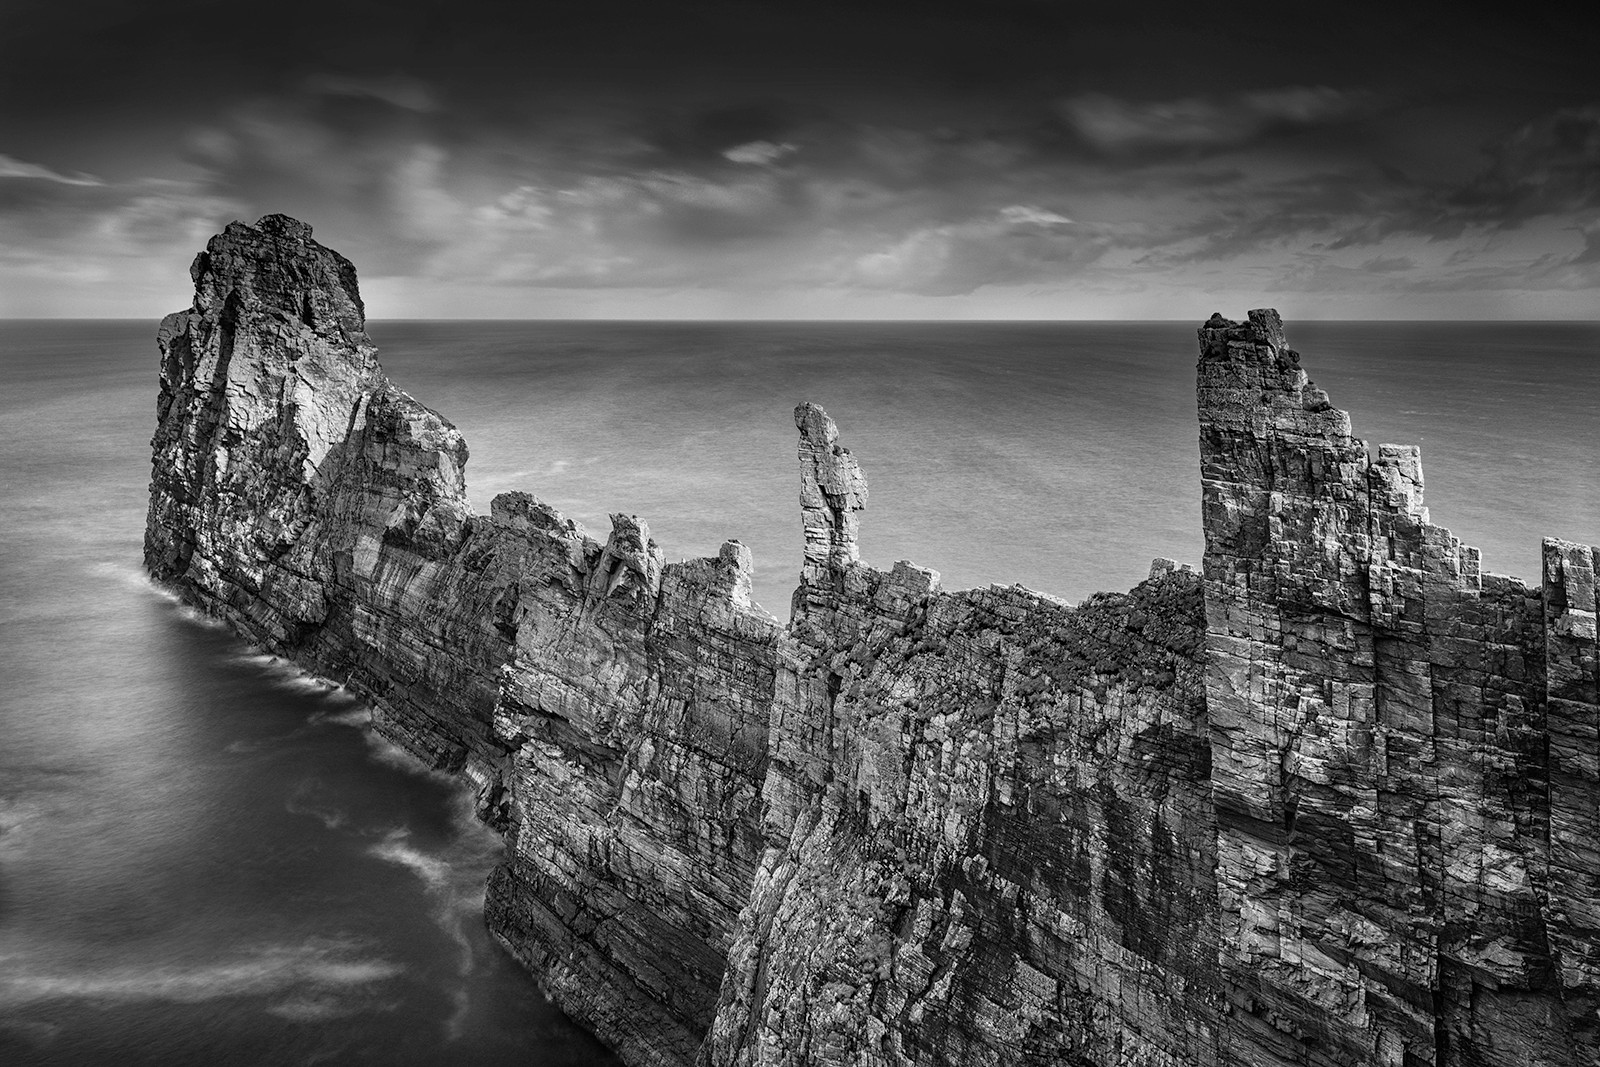 MONO - The Anvil-Tory Island by Roy Crawford (8 marks)